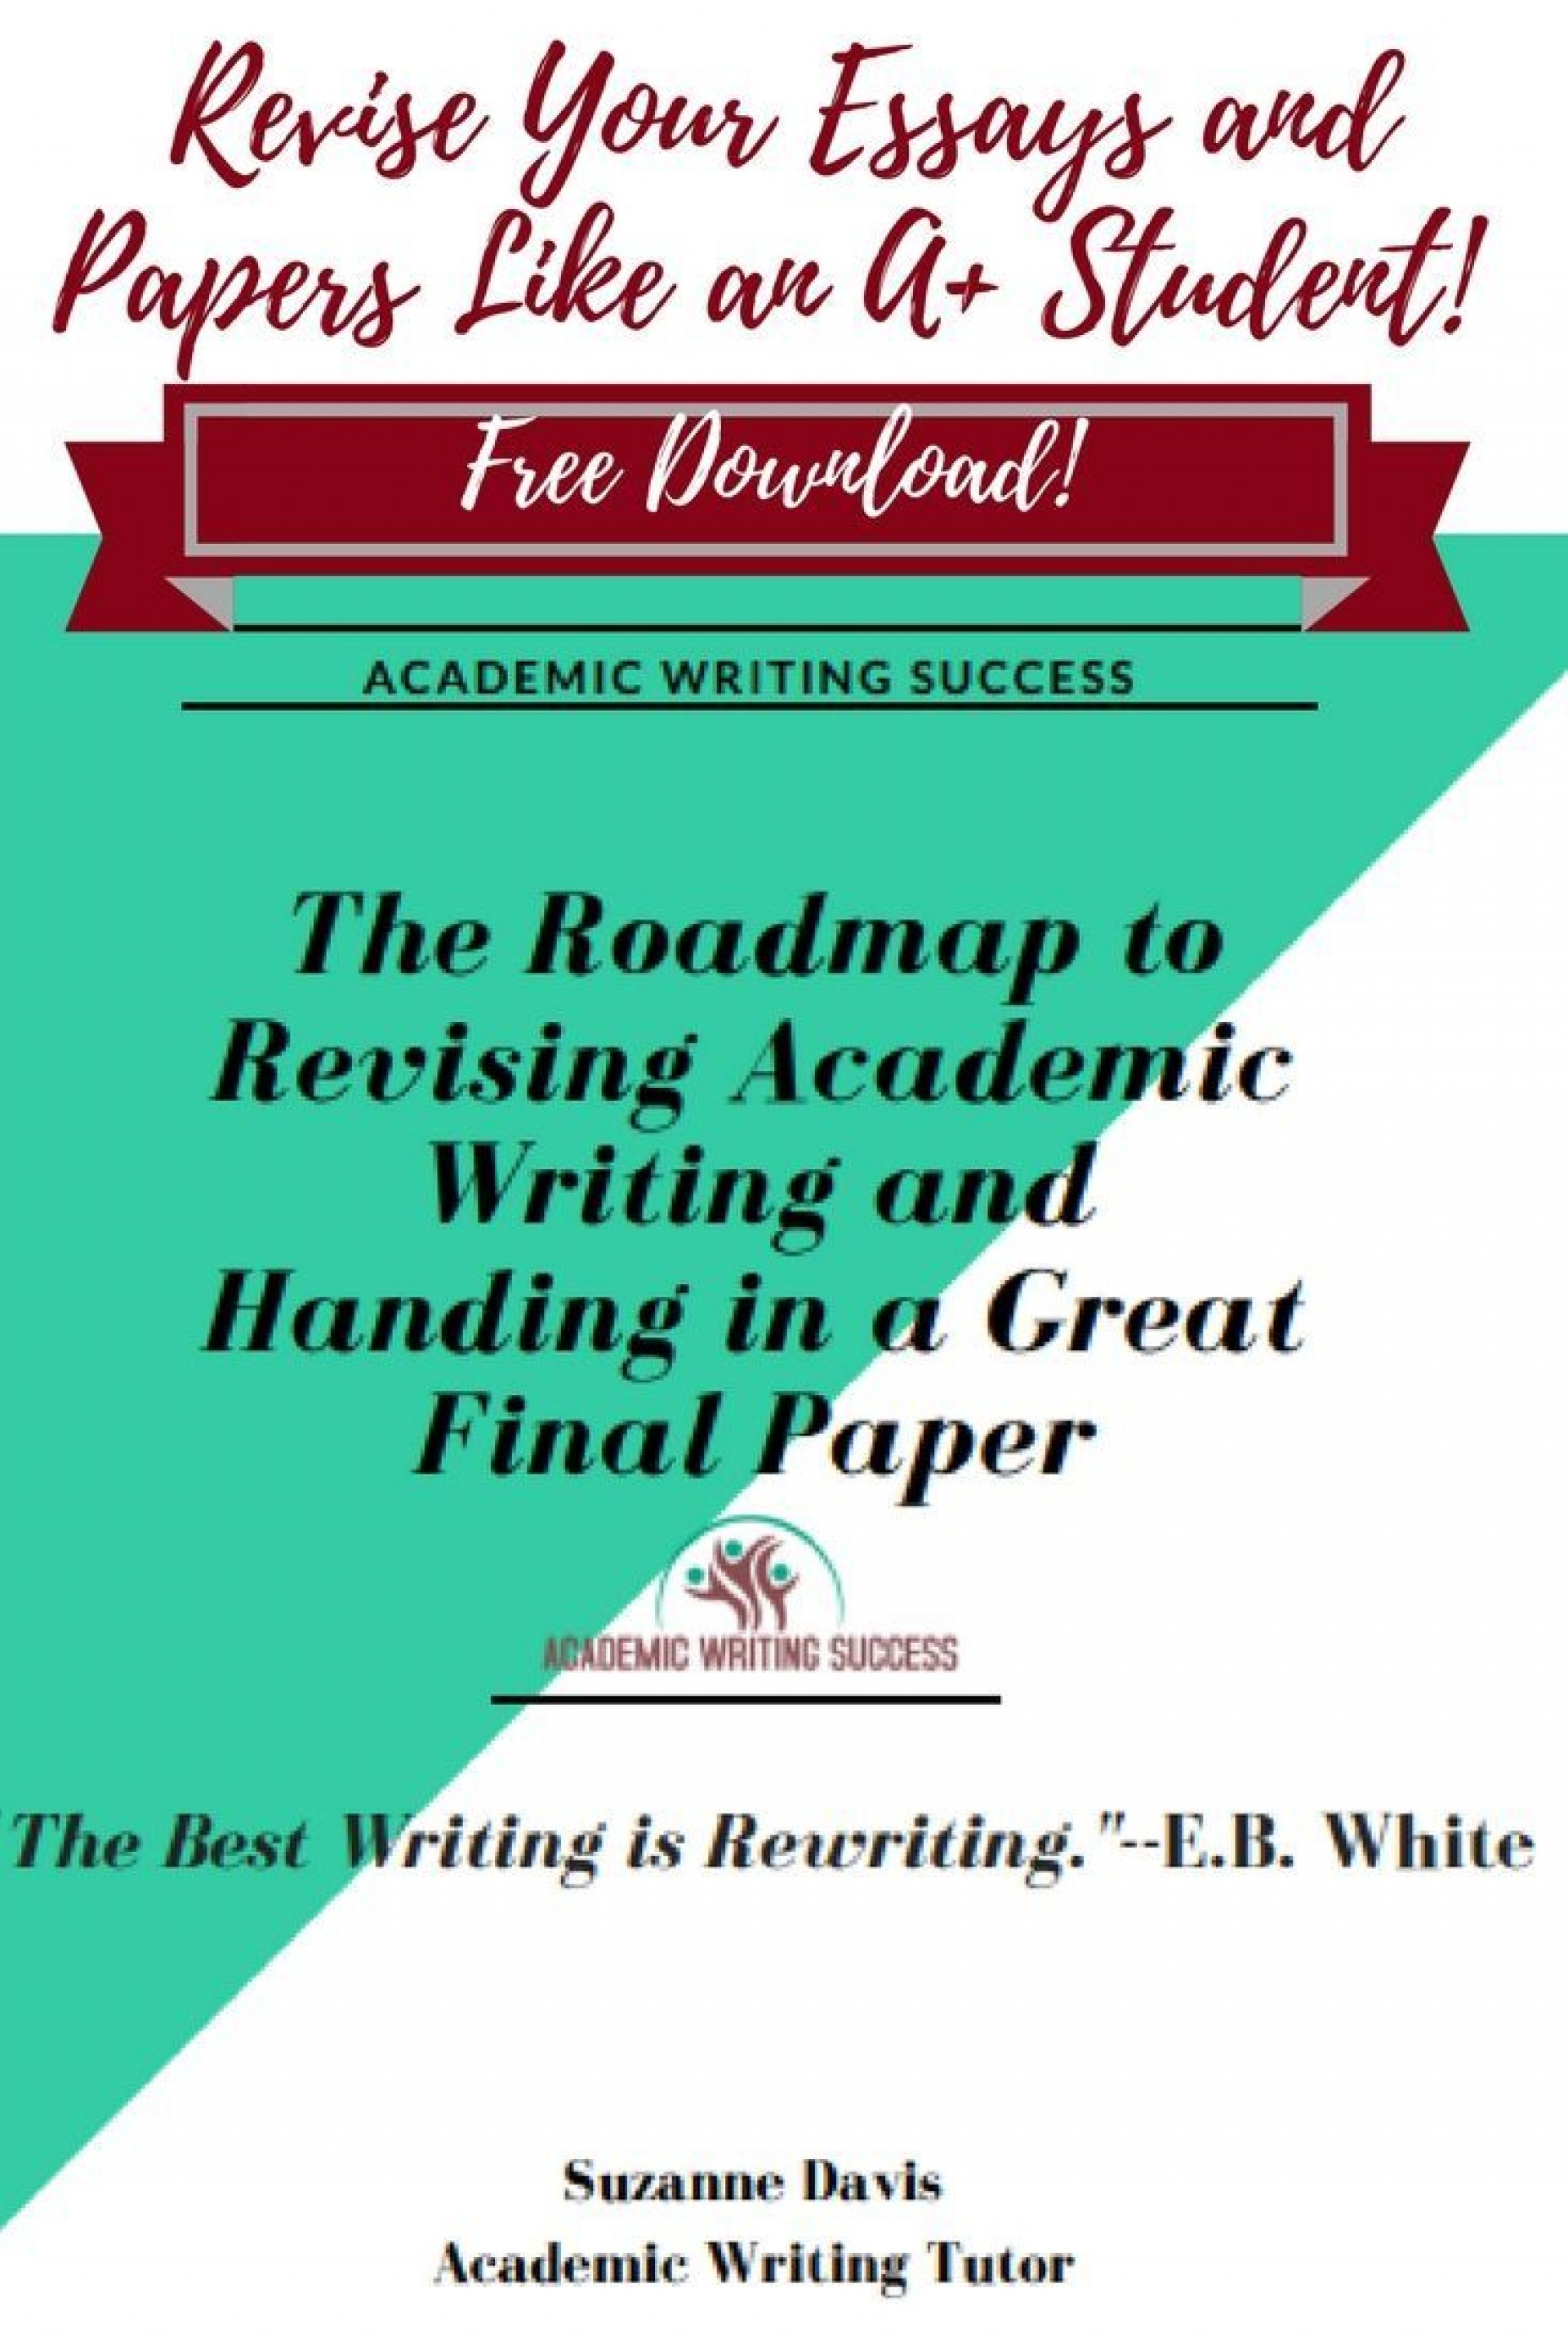 021 Research Paper Get Help Stunning With Writing A 1920